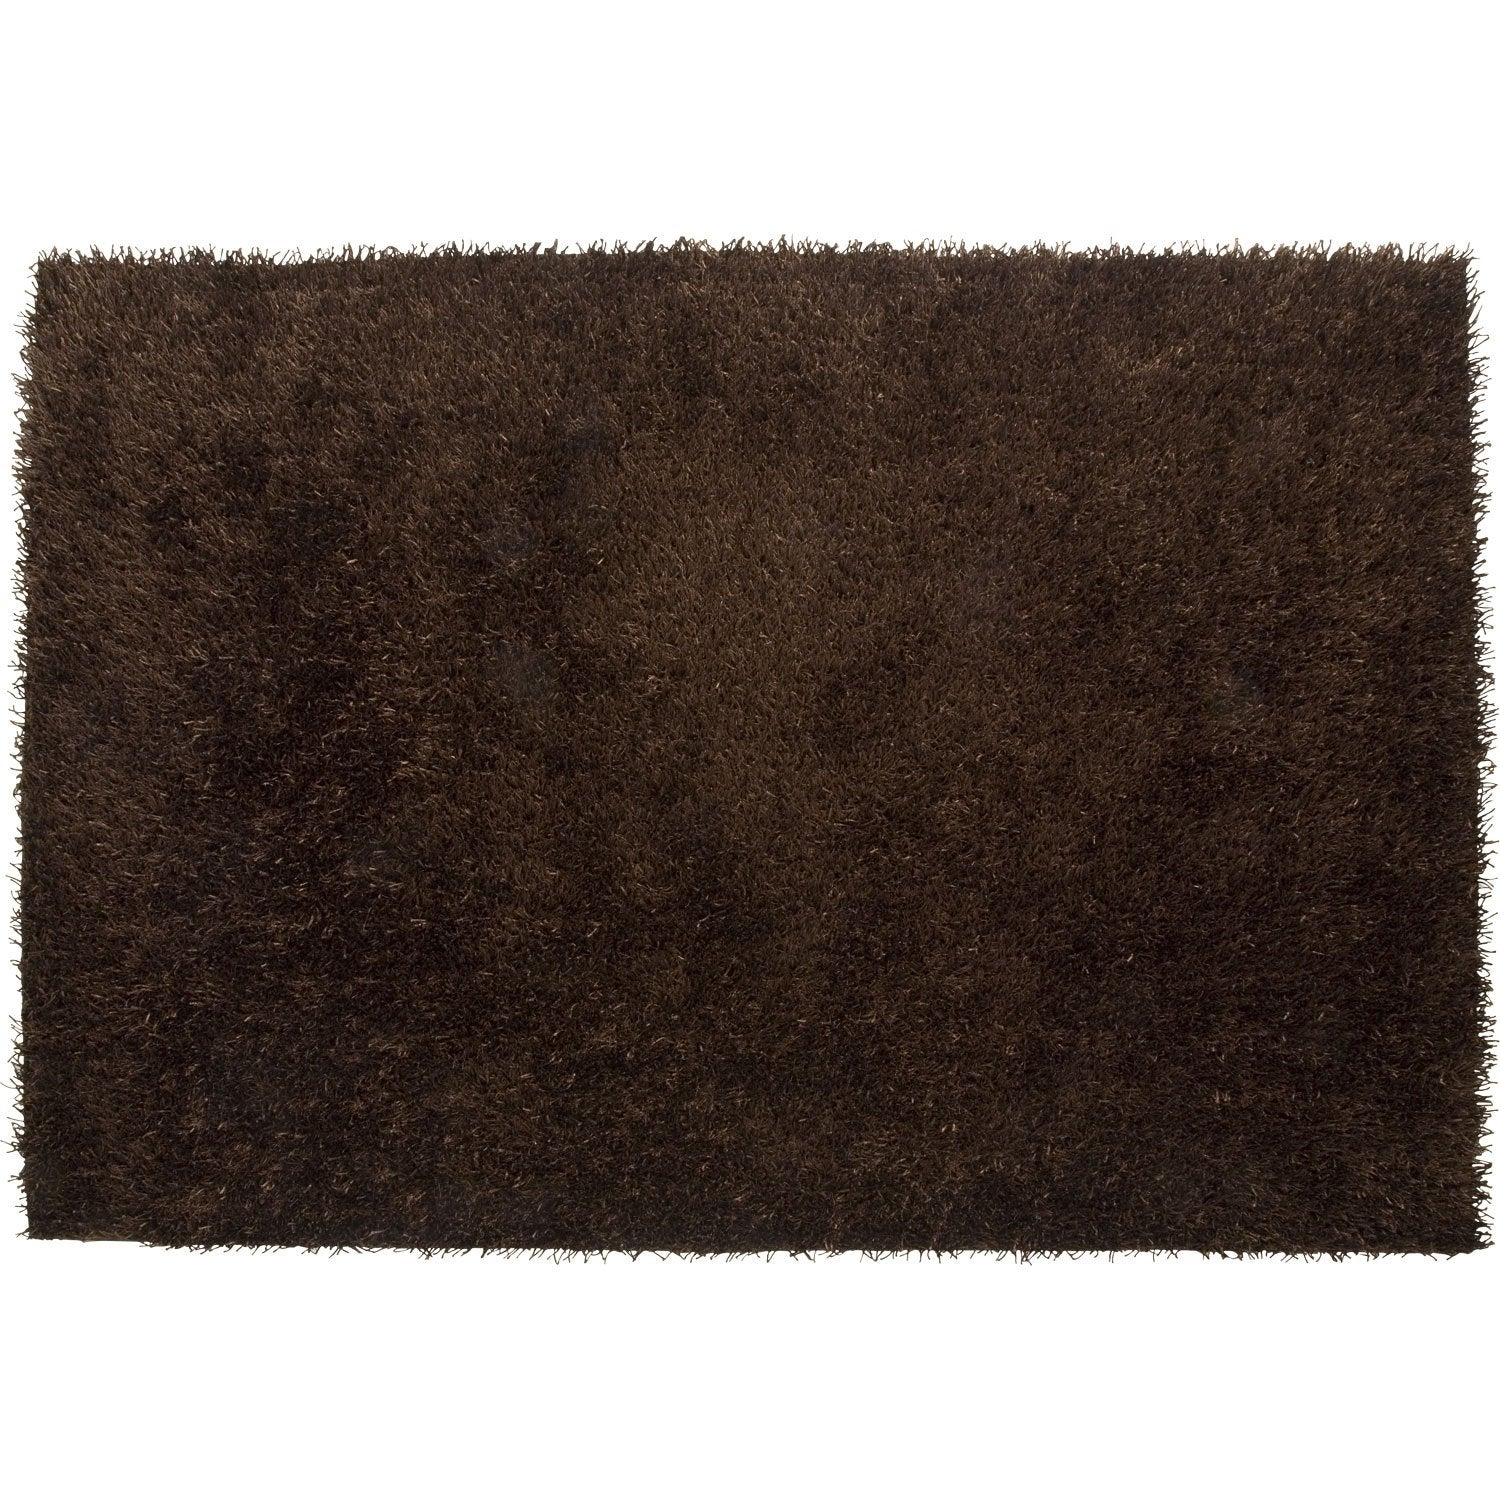 tapis shaggy lilou marron 230x160 cm leroy merlin. Black Bedroom Furniture Sets. Home Design Ideas